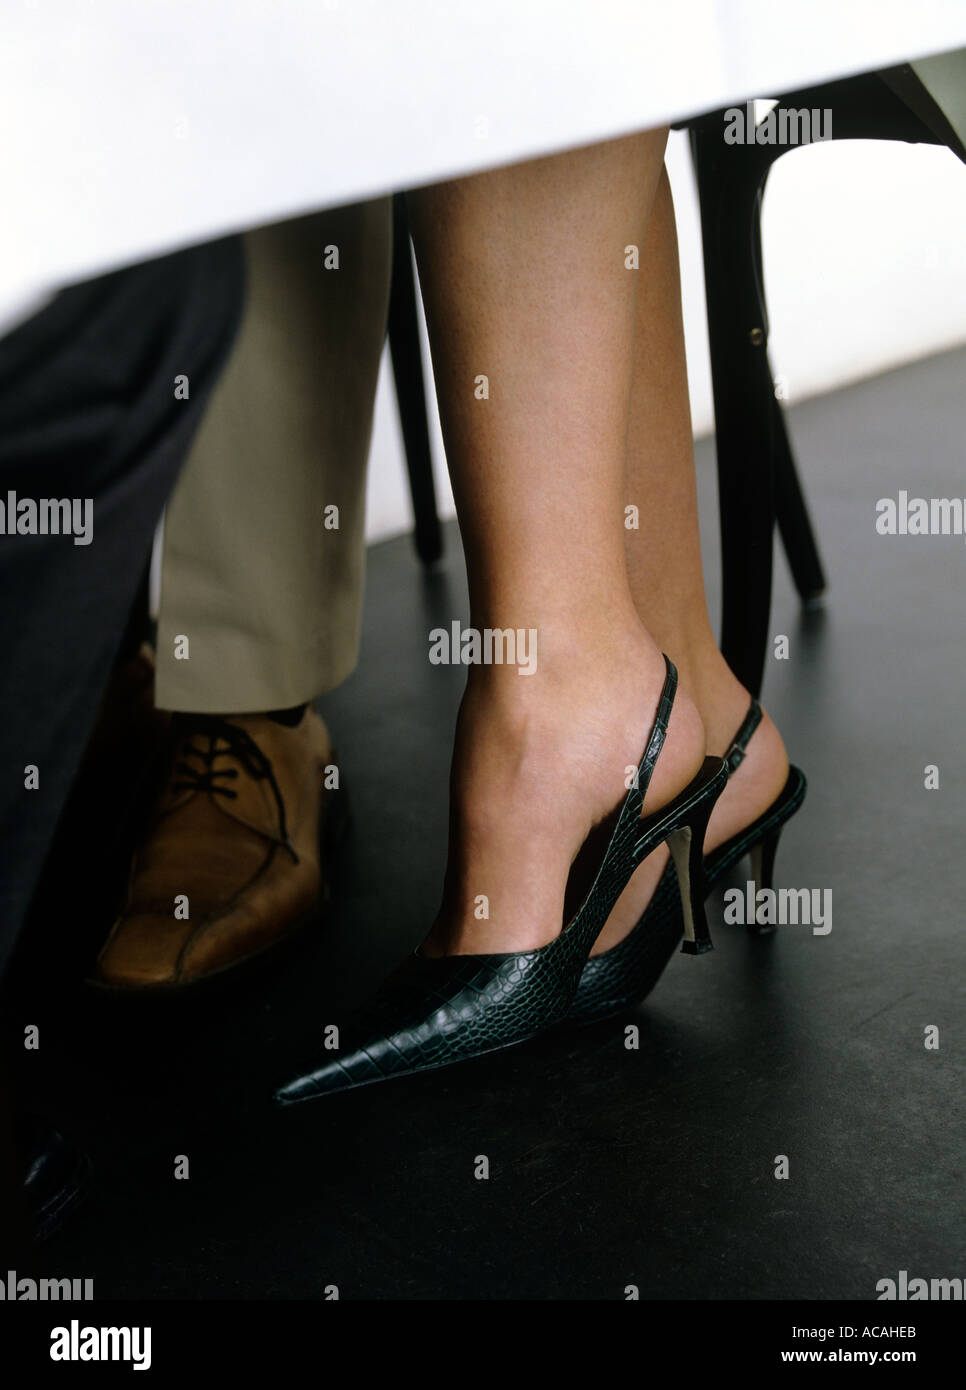 Legs Under Table Stock Photos Legs Under Table Stock Images Alamy